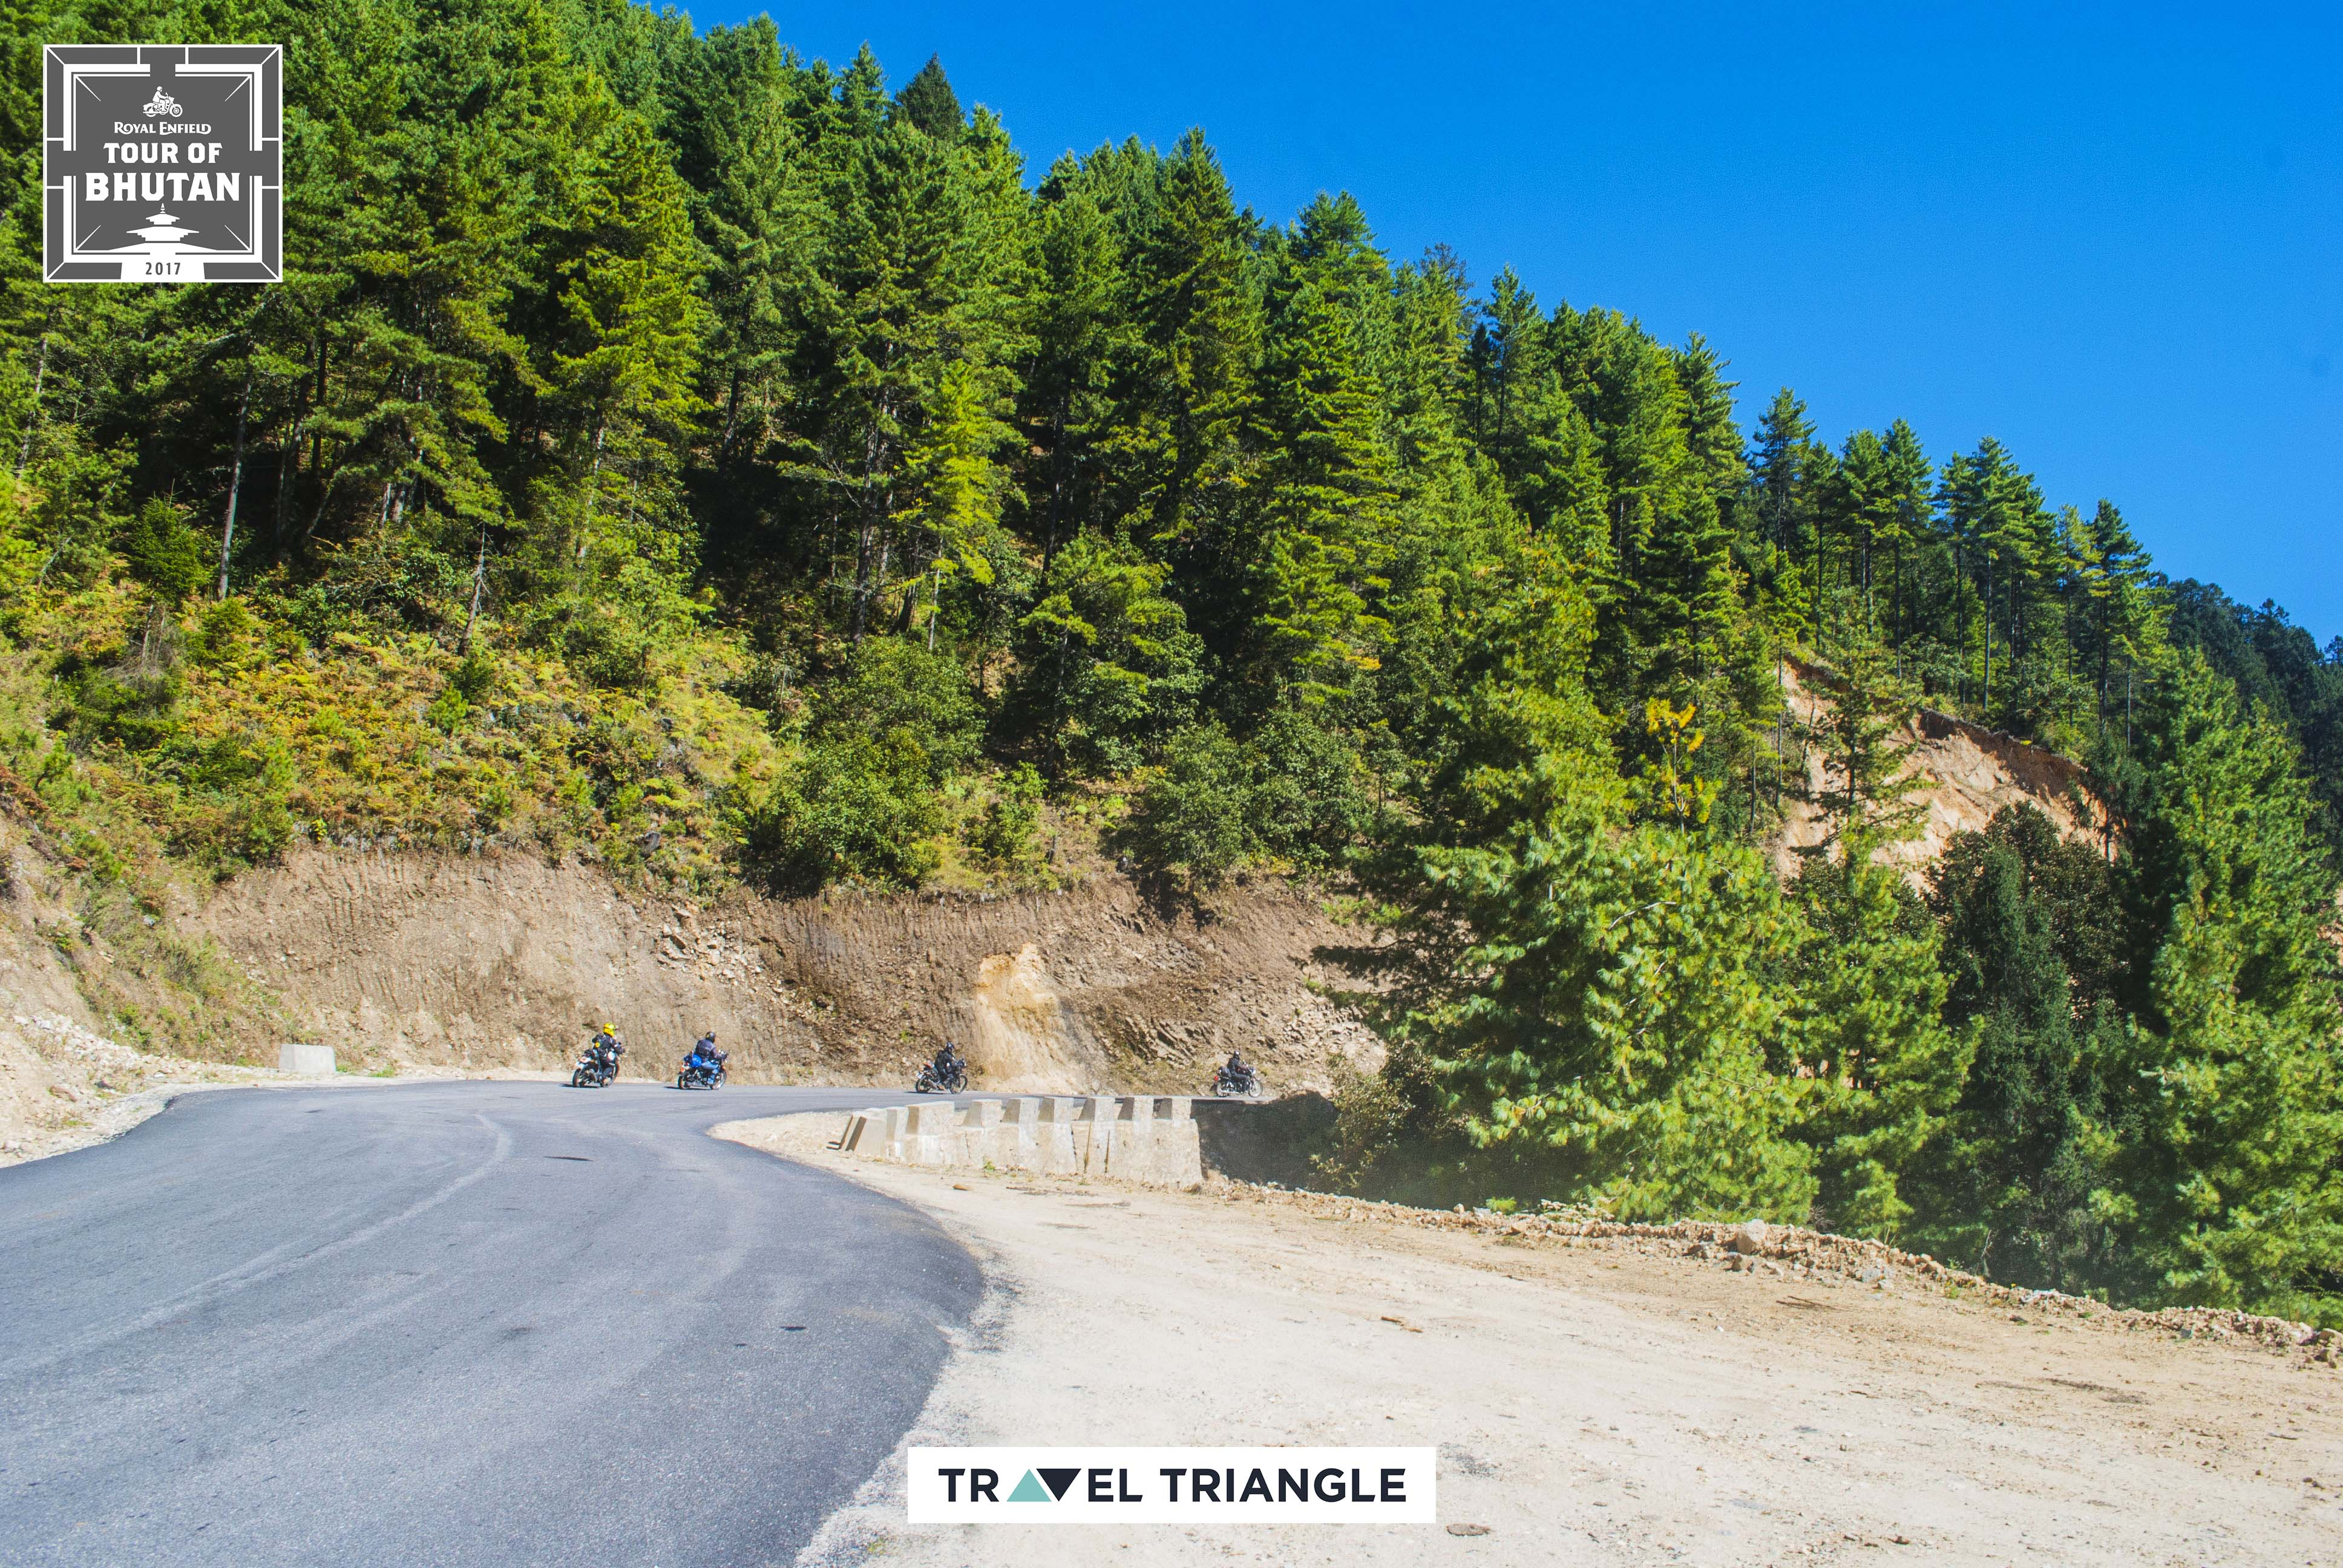 Thimphu to Punakha: the route